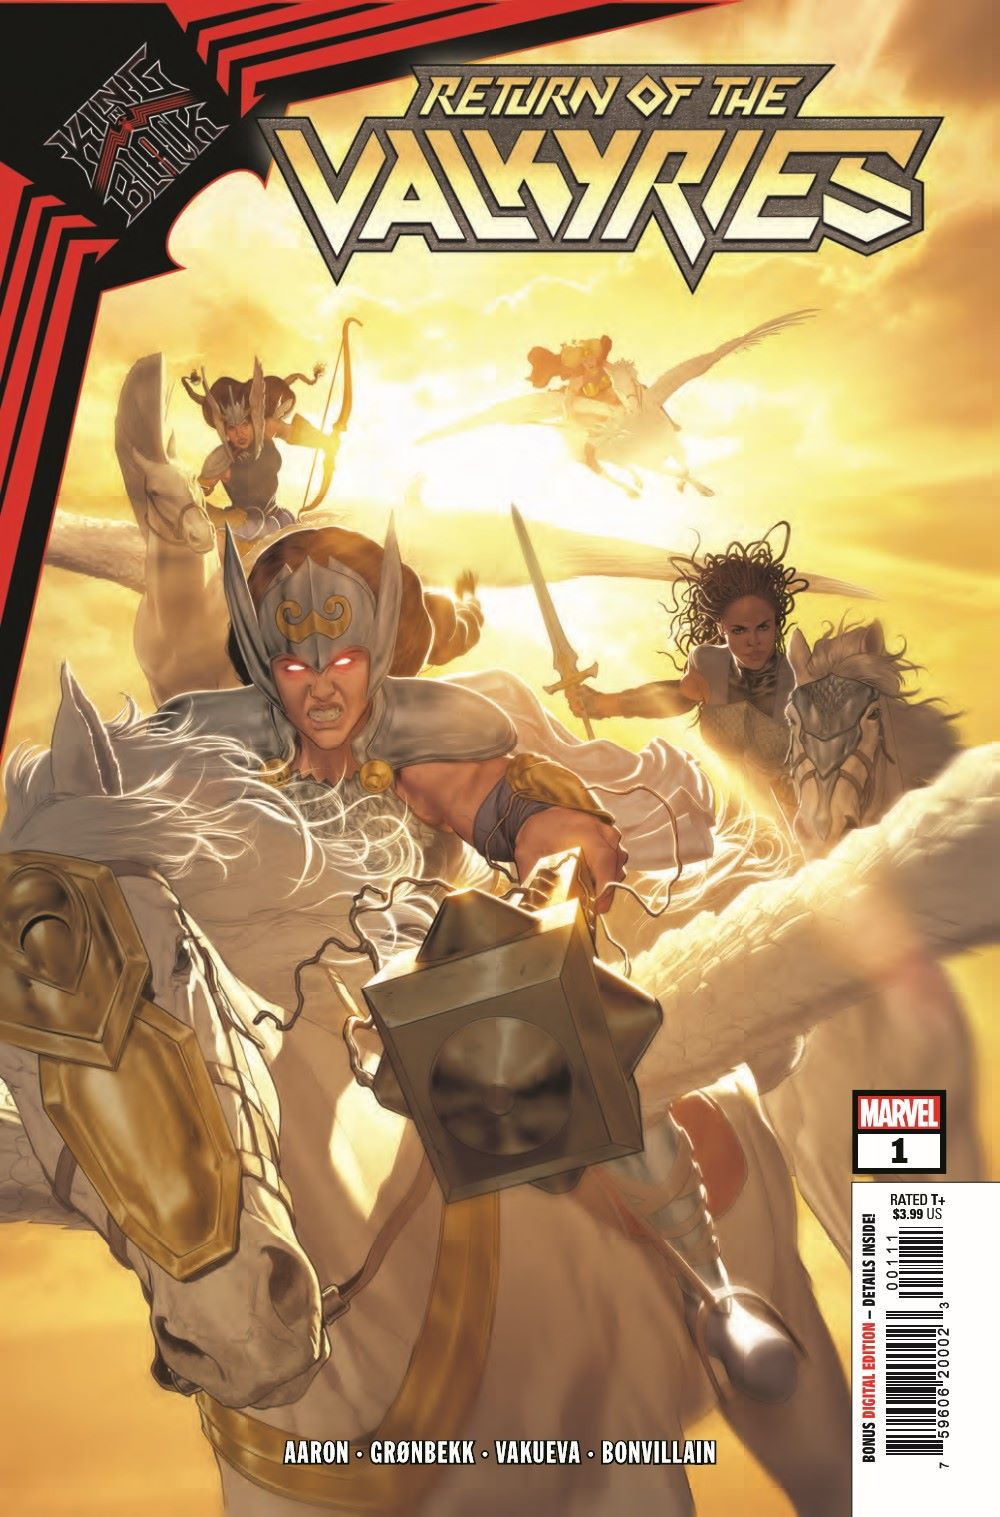 VALKYRIESRET2021001_Preview-1 ComicList Previews: KING IN BLACK RETURN OF THE VALKYRIES #1 (OF 4)